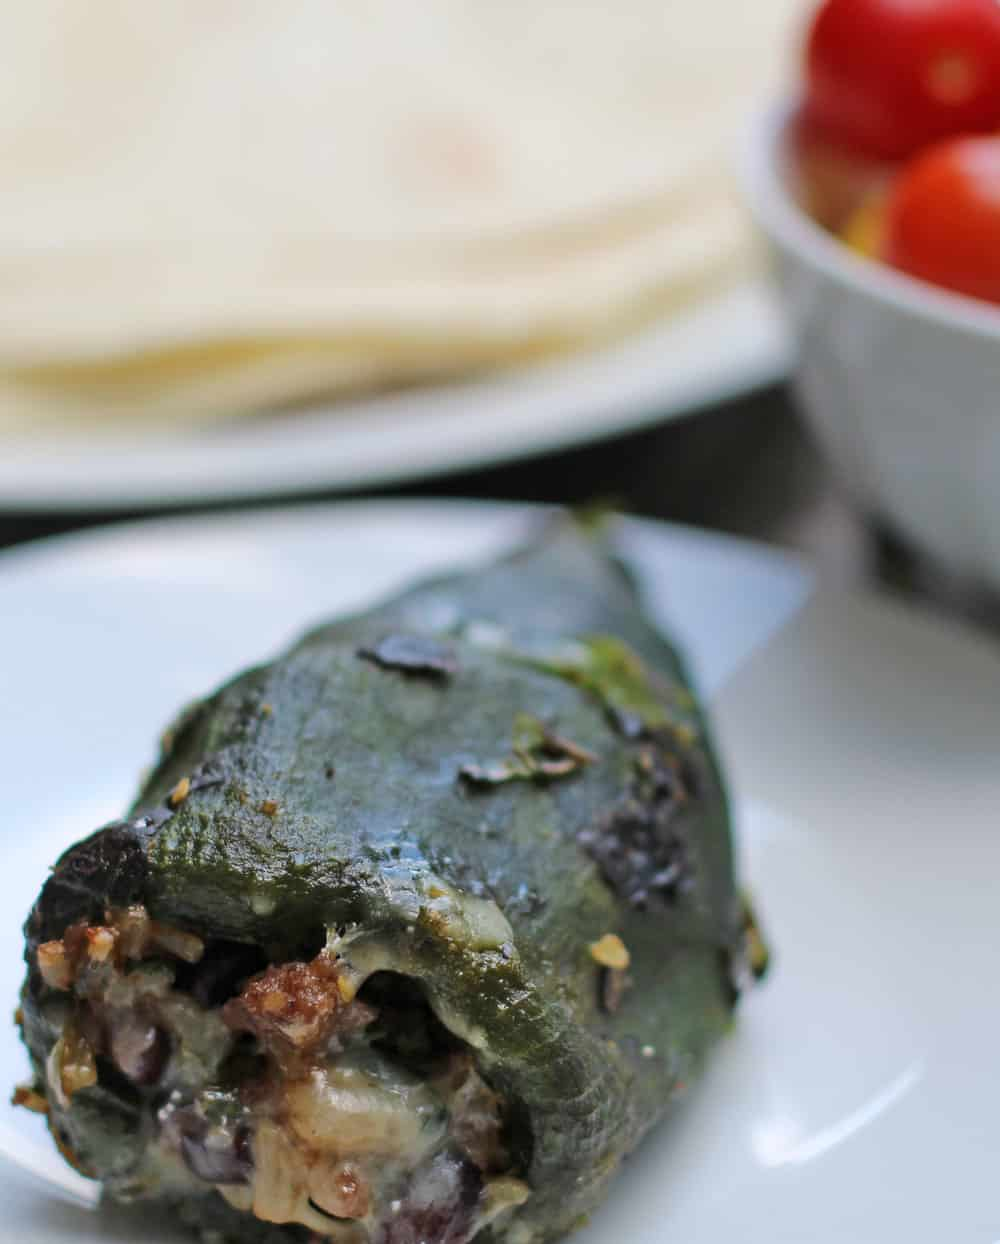 Perfect summer food - easy stuffed poblano peppers with lots of beef, rice and beans - a whole meal in a single, slightly spicy pepper | Mother Would Know